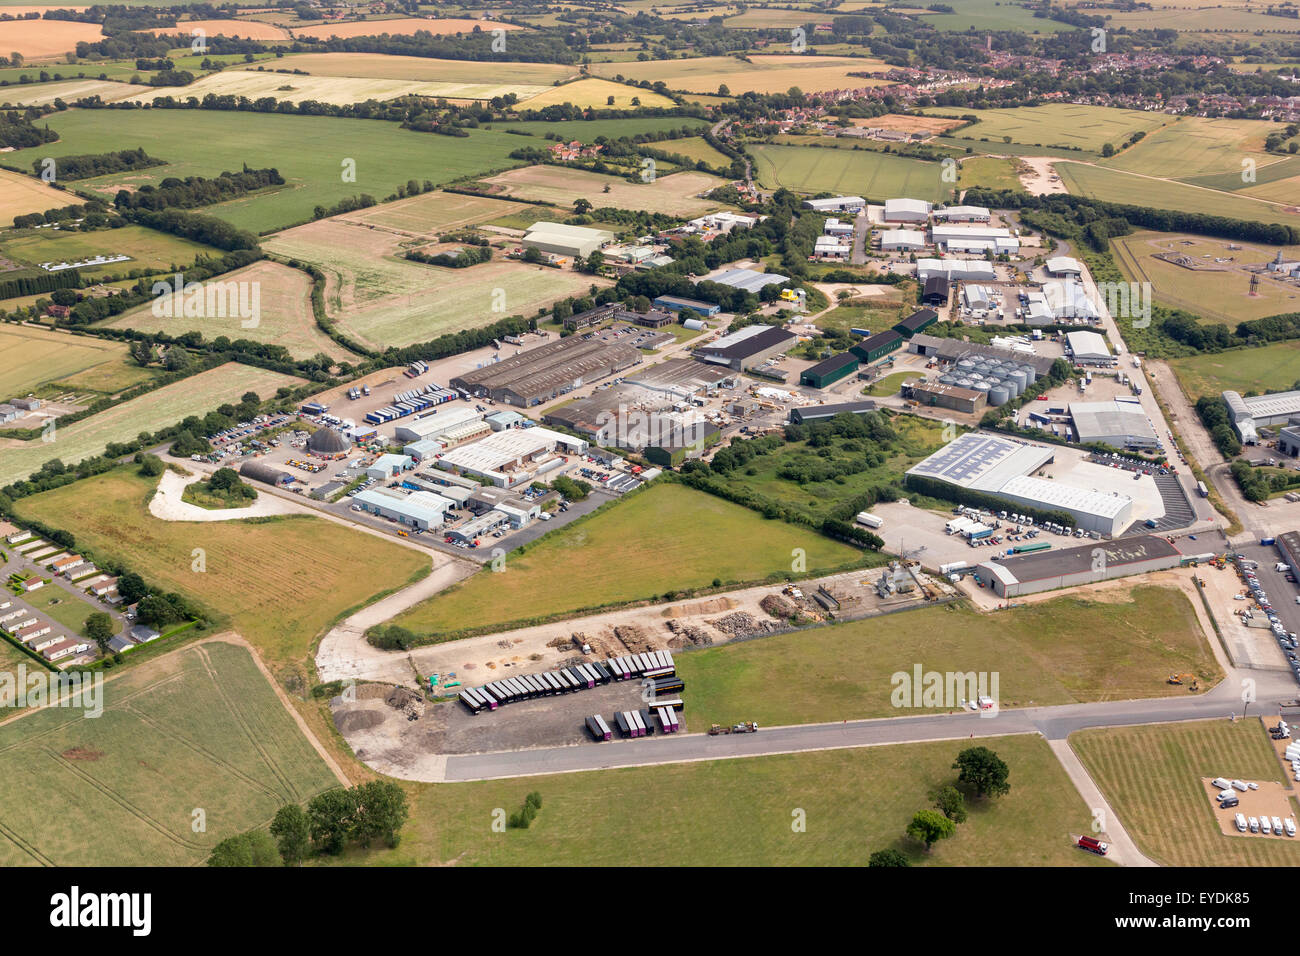 aerial view of Eye airfield industrial estate in Suffolk, UK - Stock Image